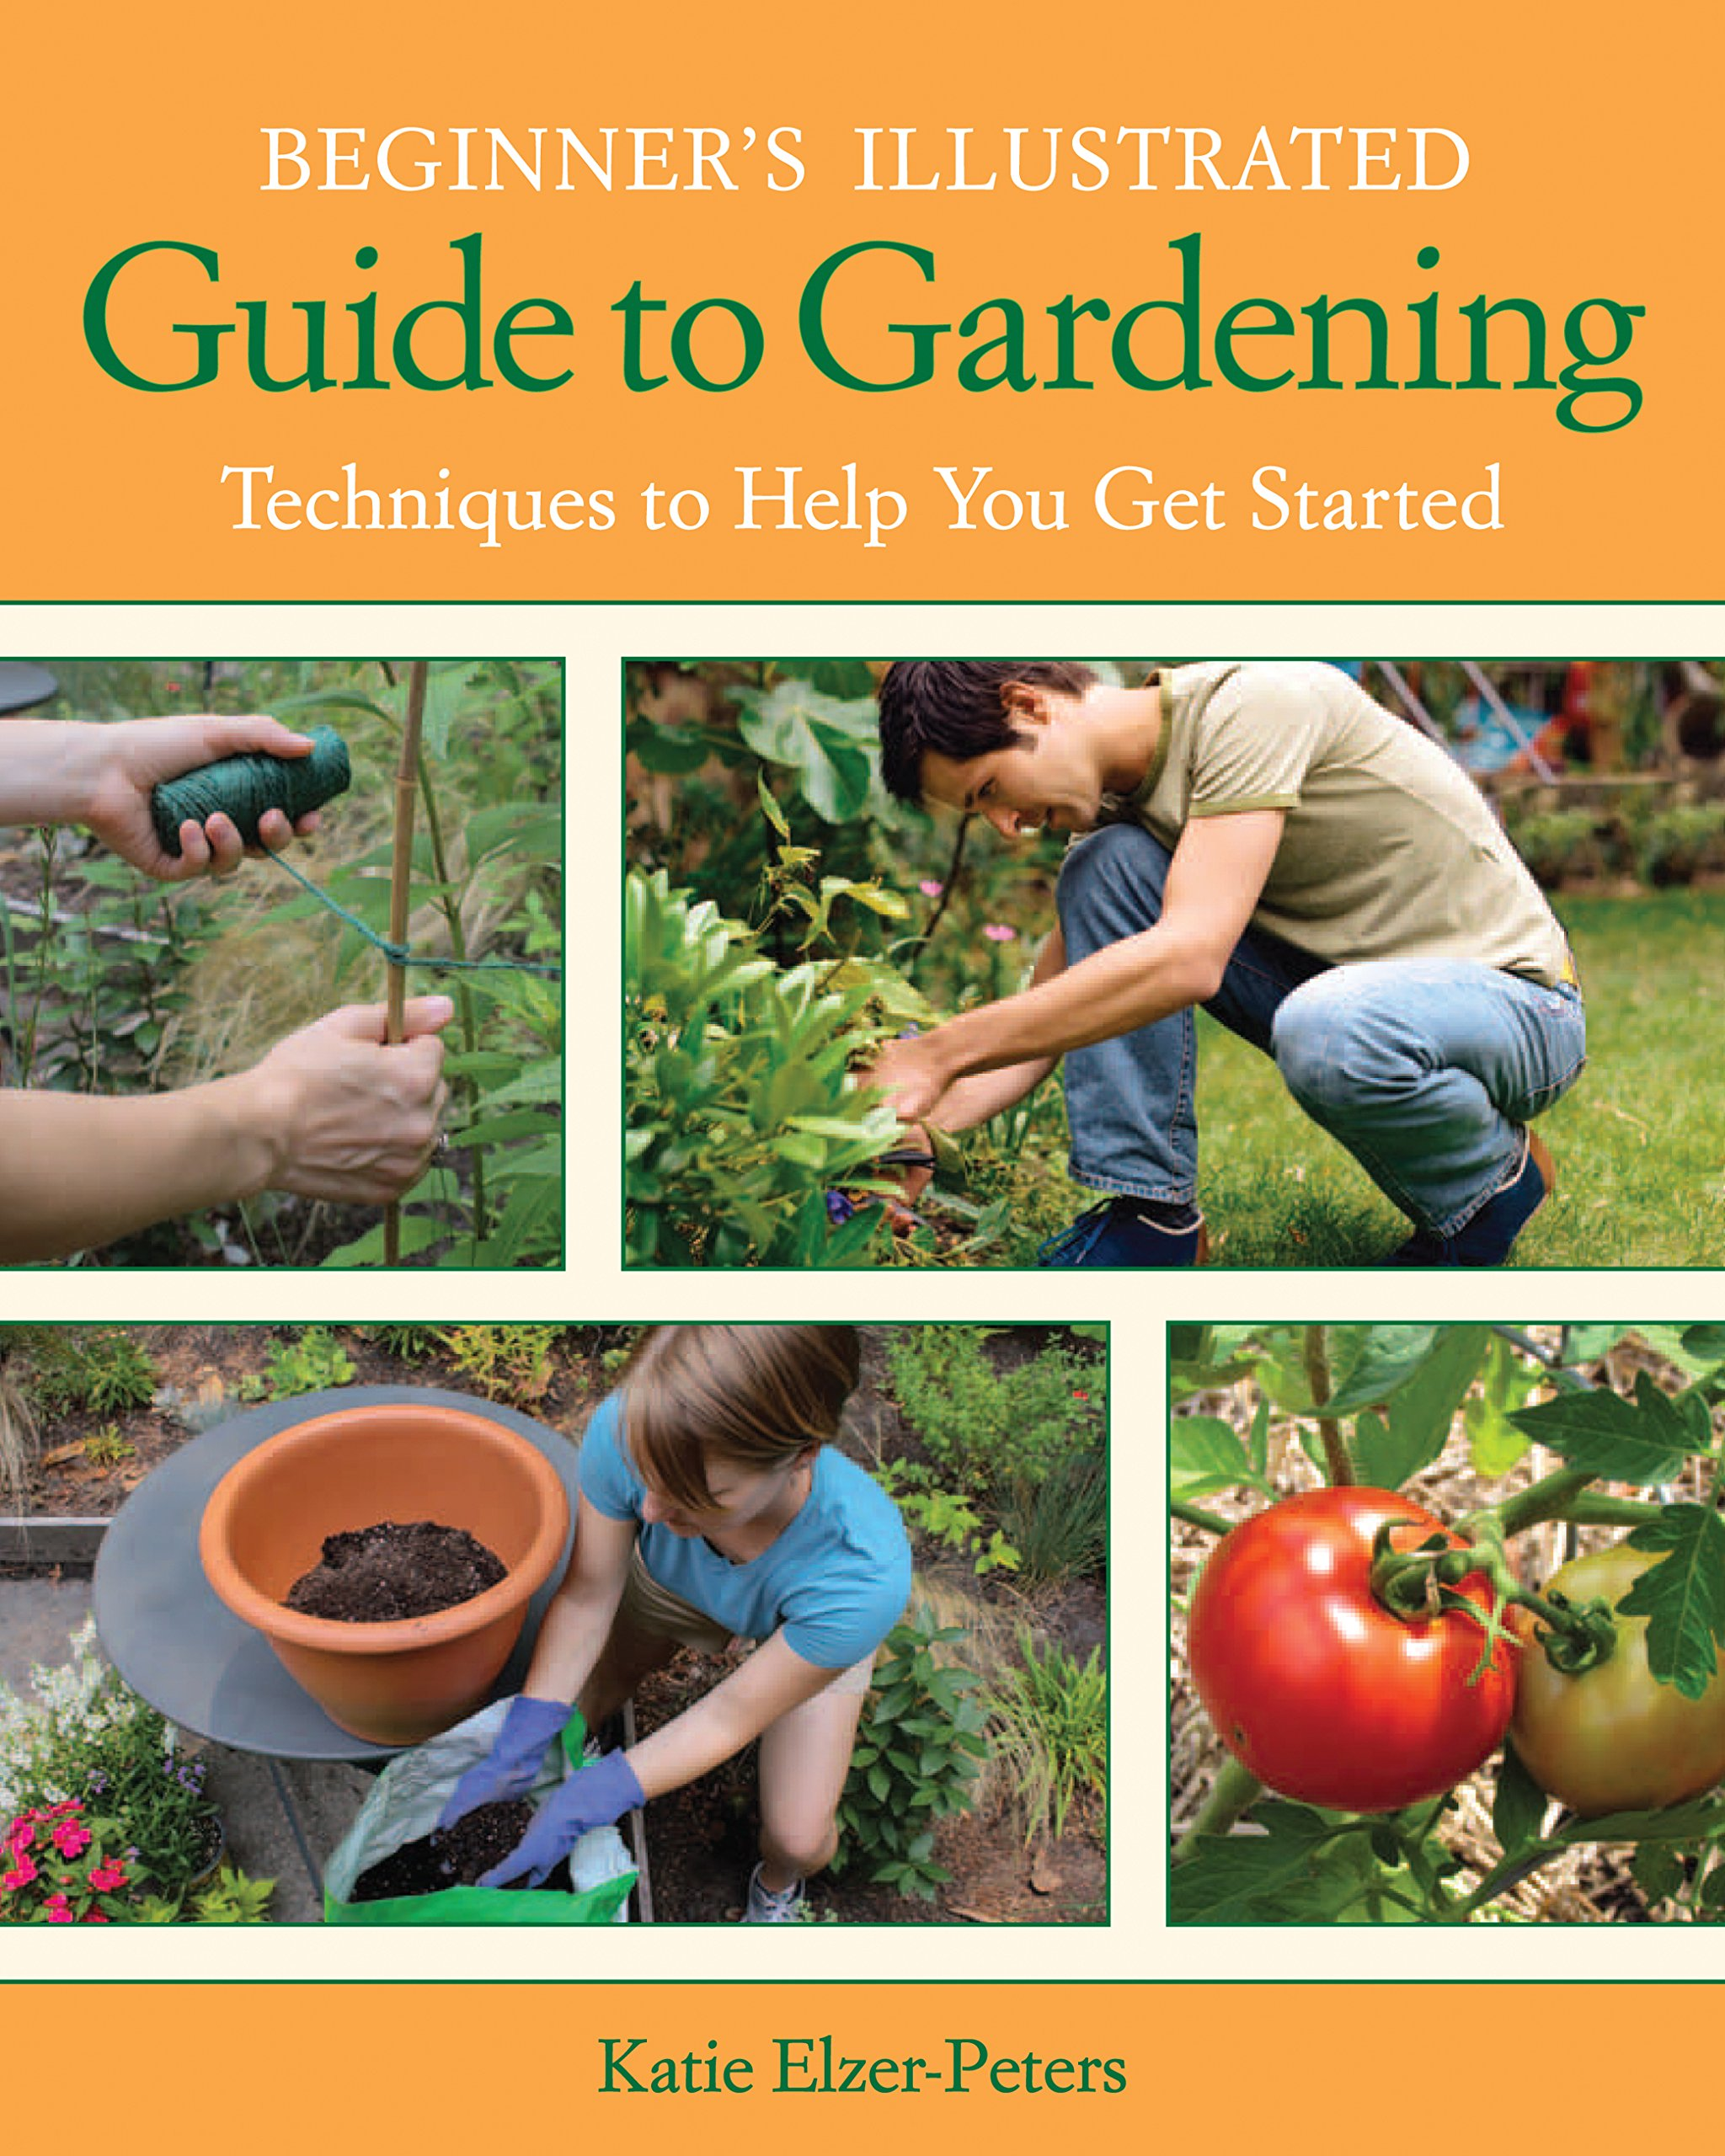 gifts for mom that likes to garden. beginner's illustrated guide to gardening